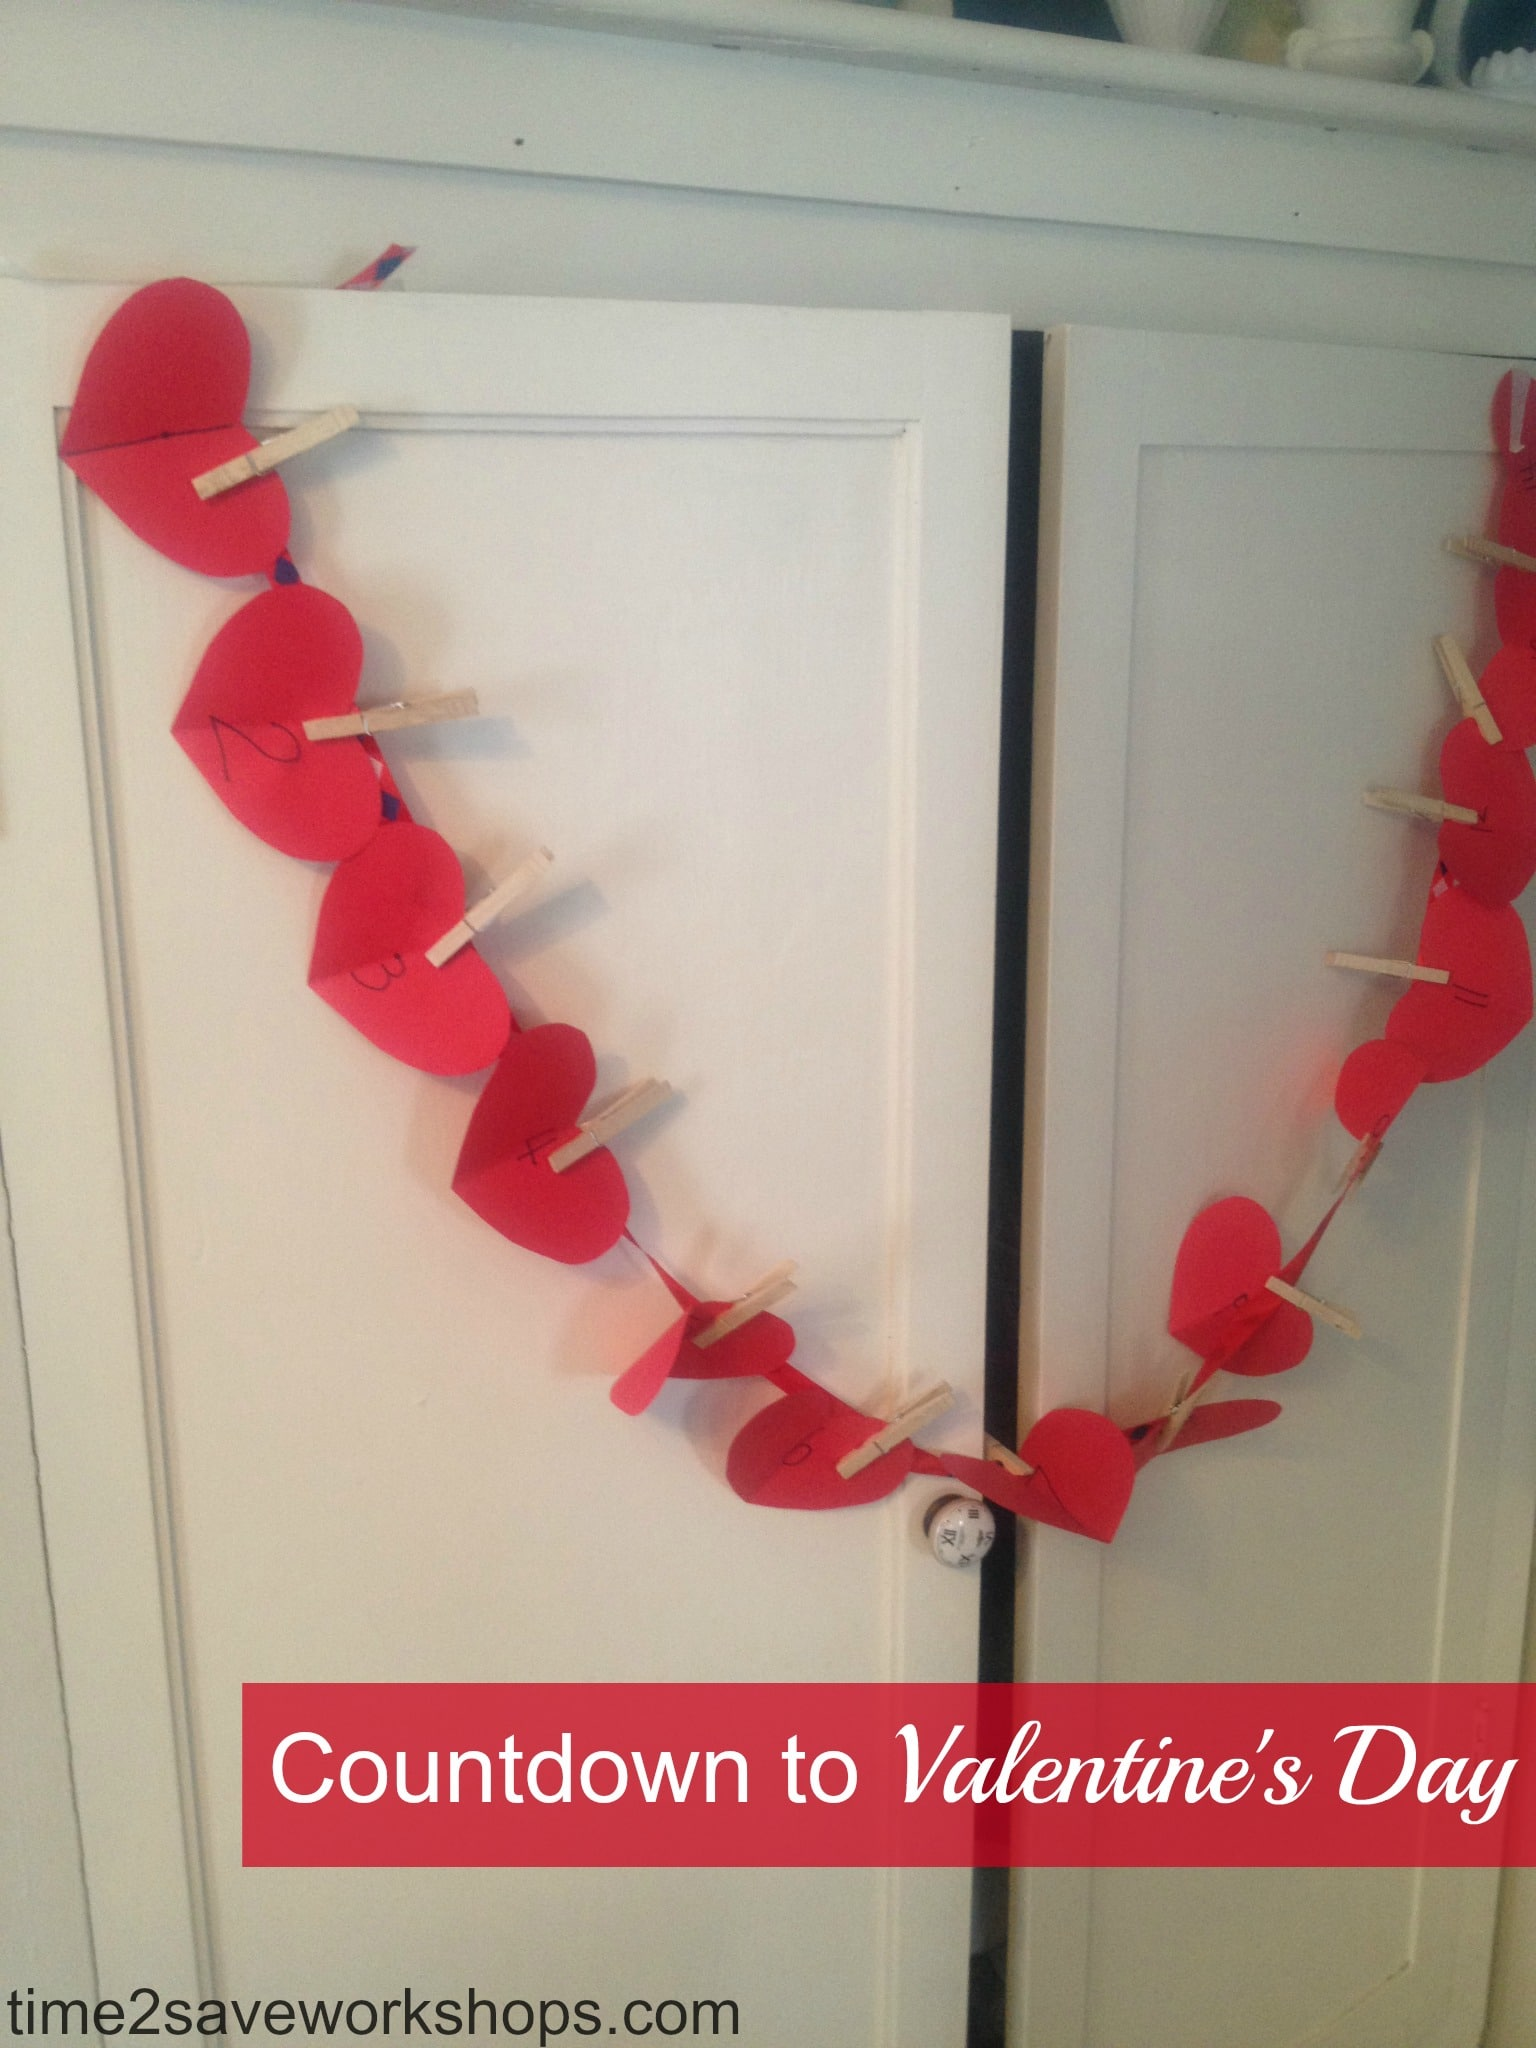 Countdown to Valentines Day